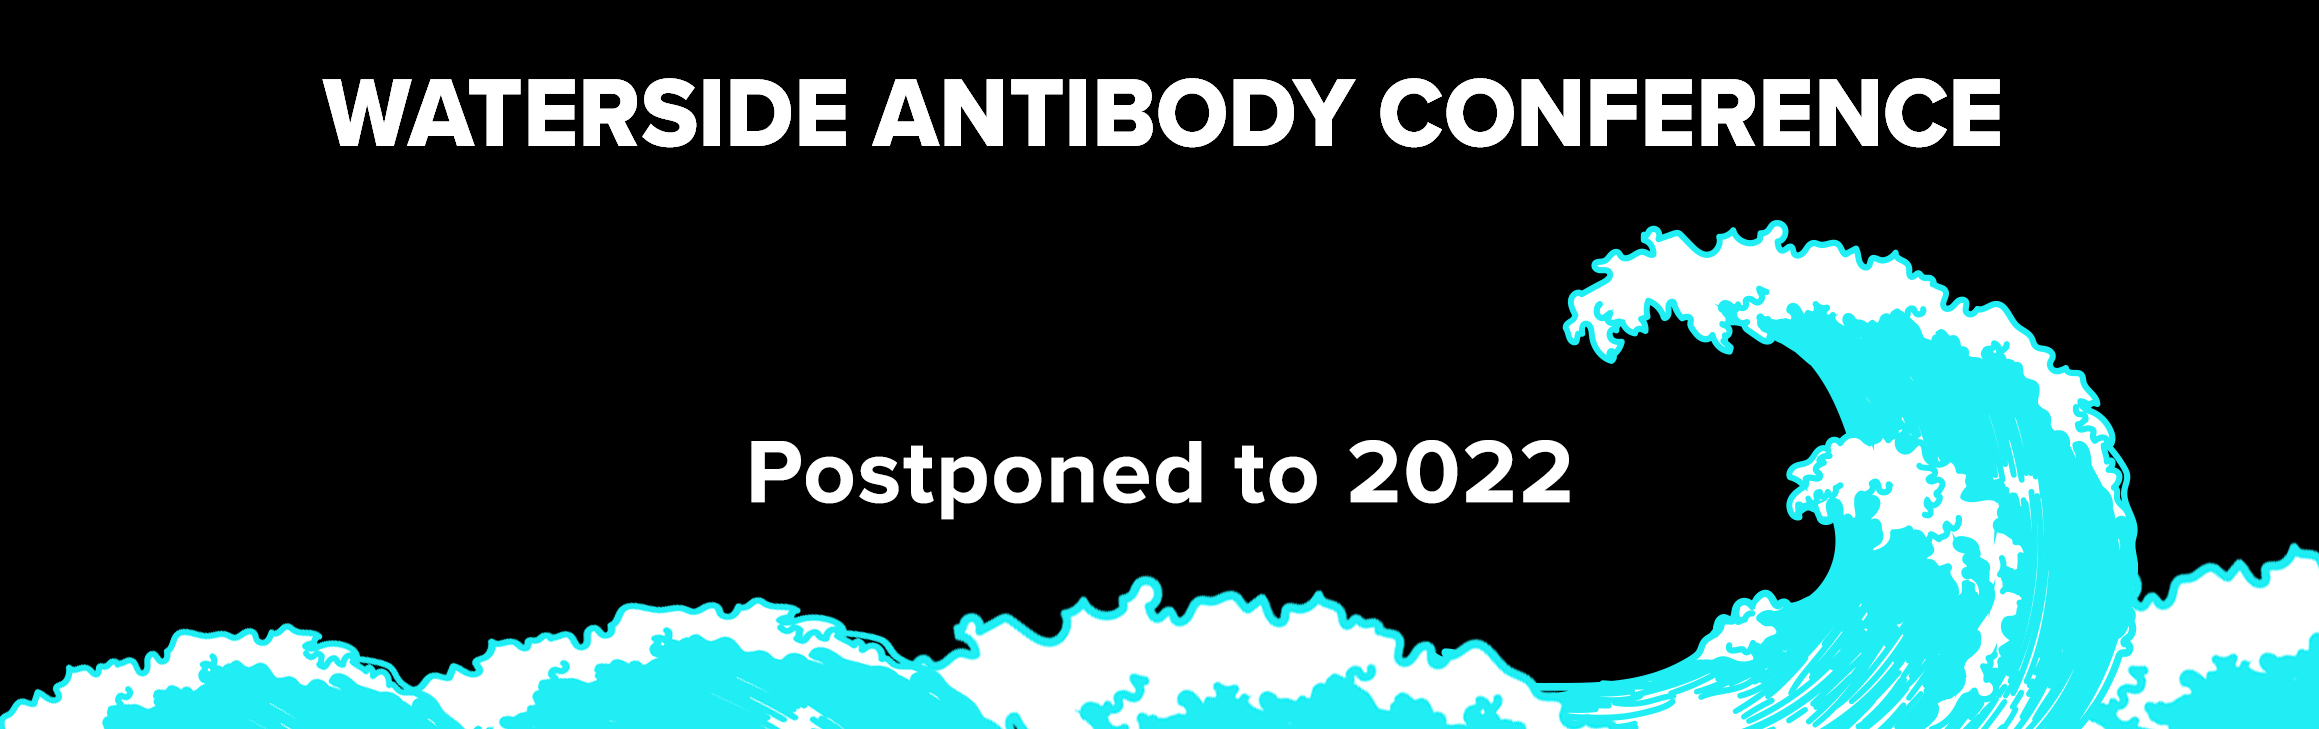 Waterside Antibody Conference